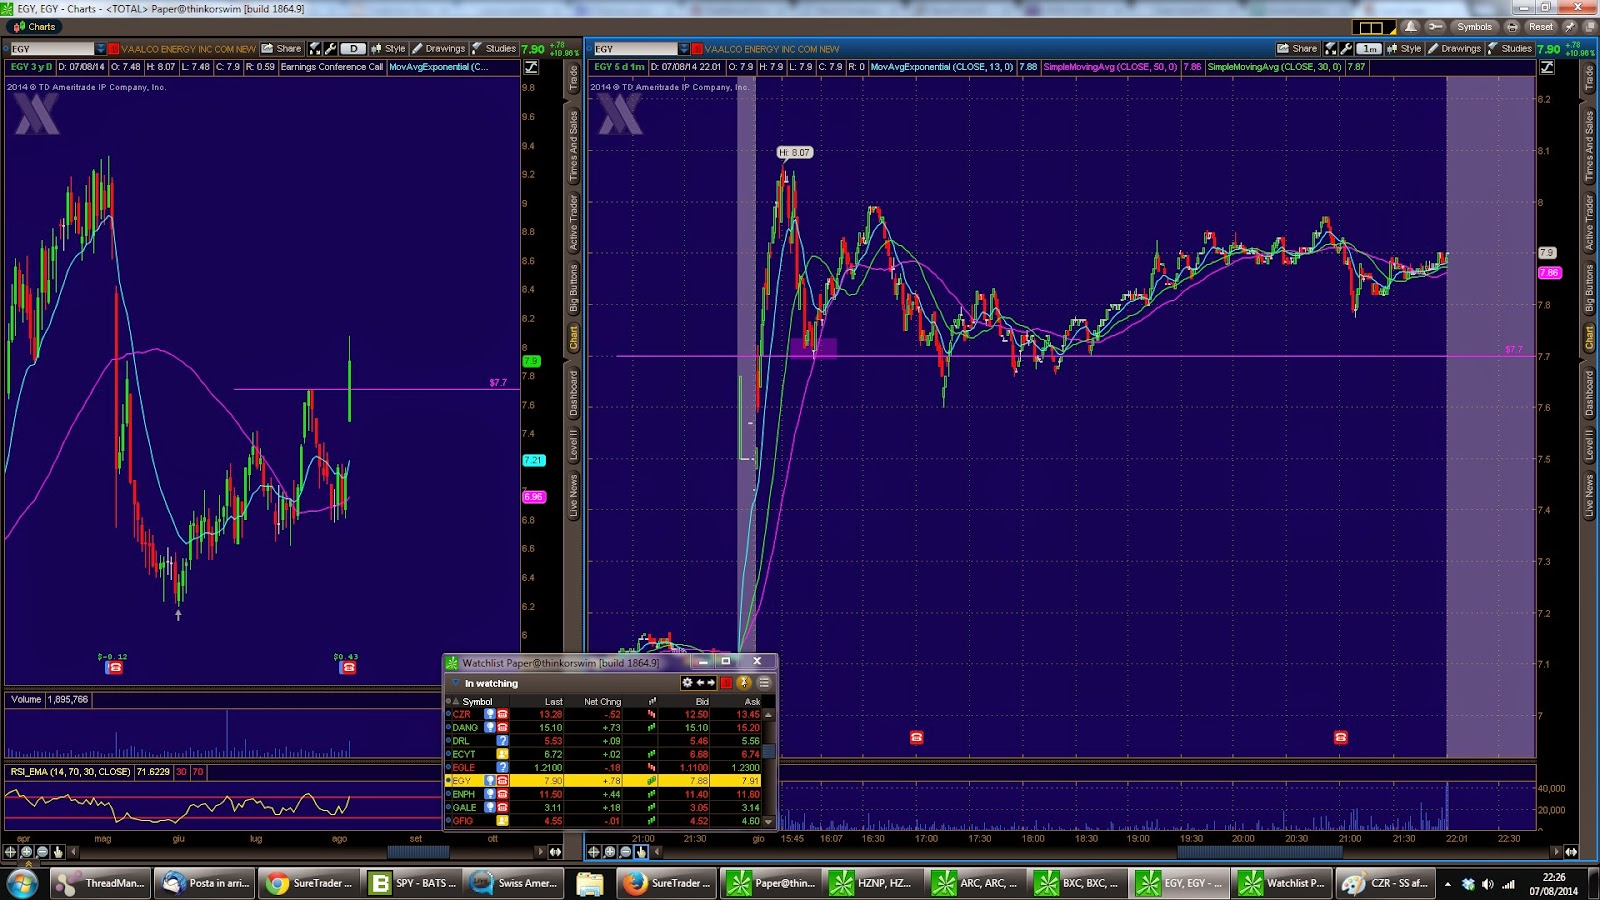 Penny Stock Millionaire Trader: How to trade an earnings winner?